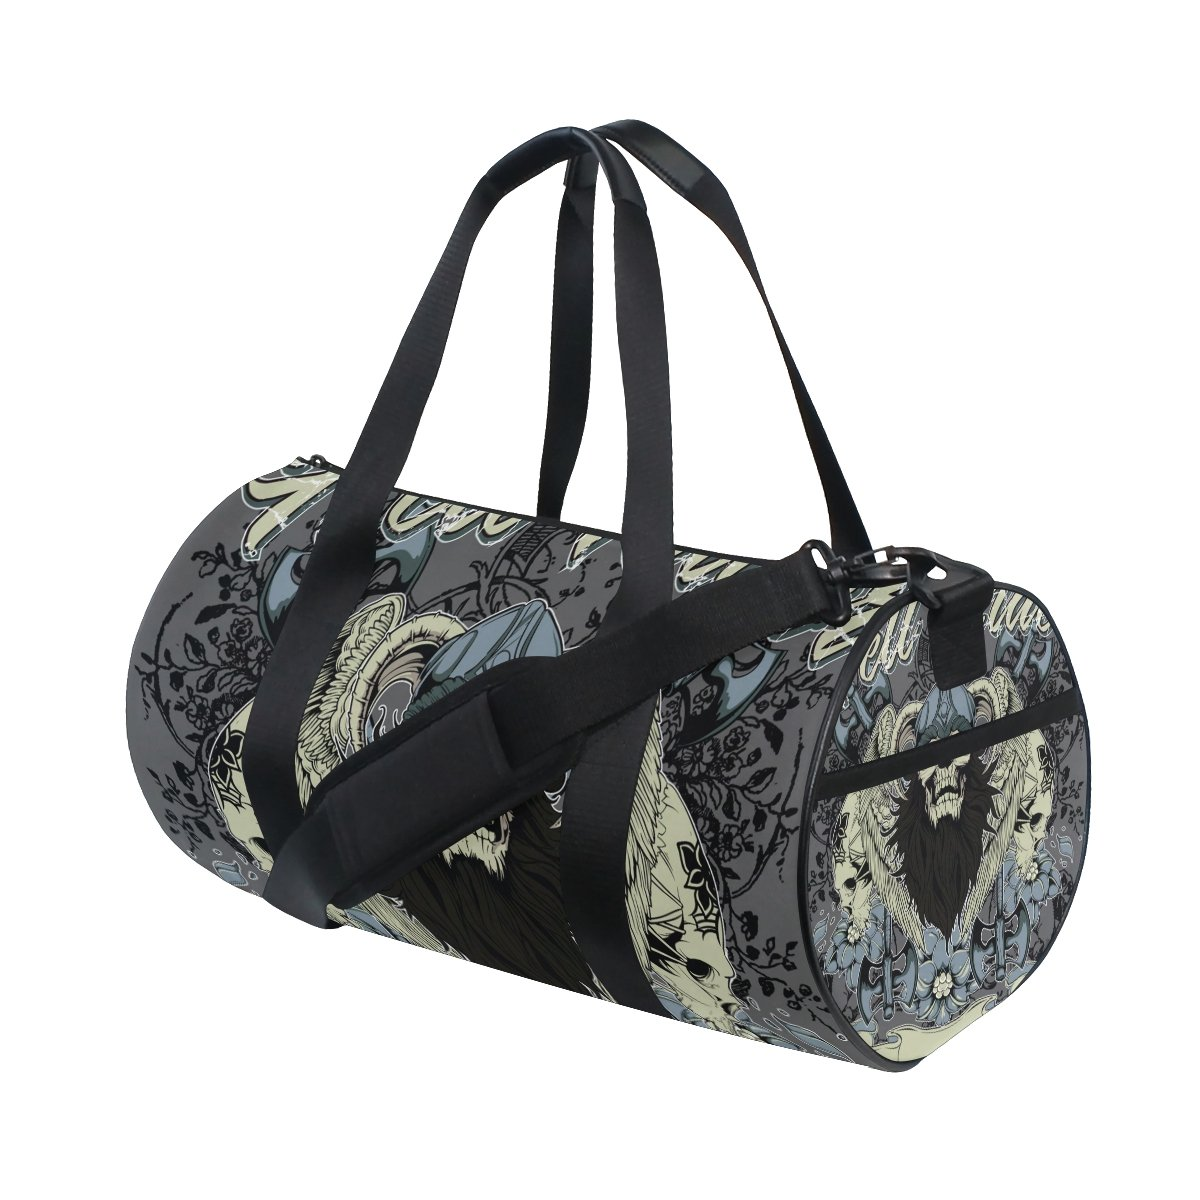 Gothic Punk Skull Travel Duffel Shoulder Bag, Sports Gym Fitness Bags